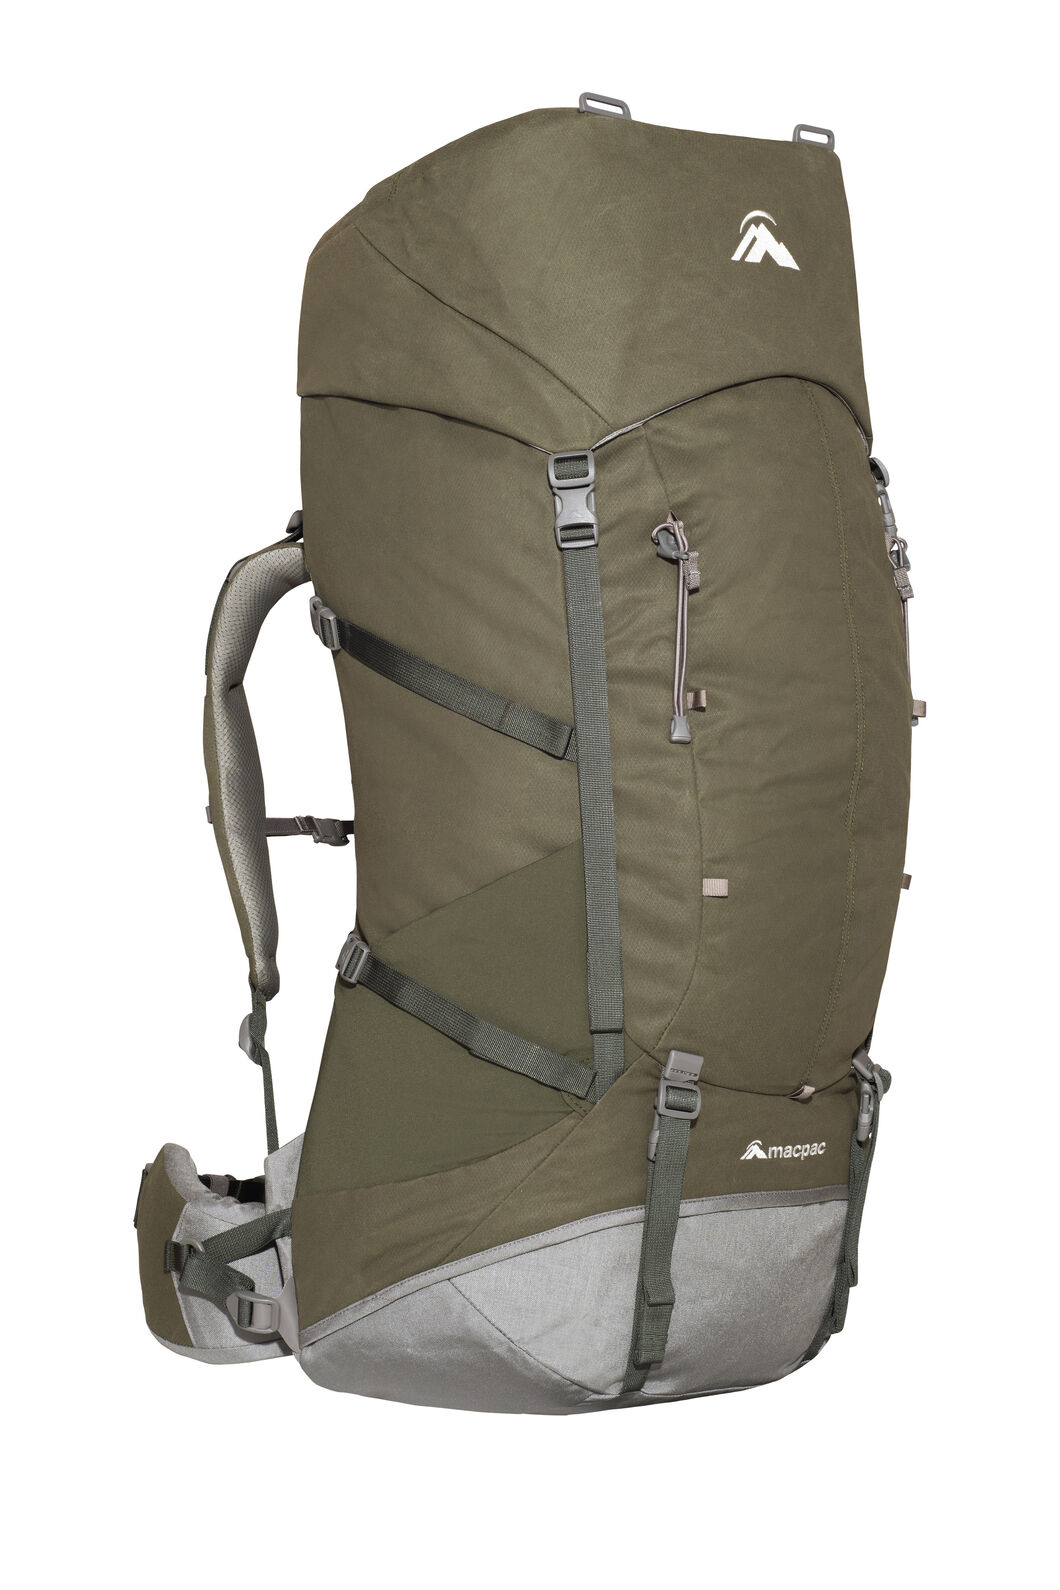 Macpac Cascade 75L AzTec® Hiking Pack, Forest Night, hi-res